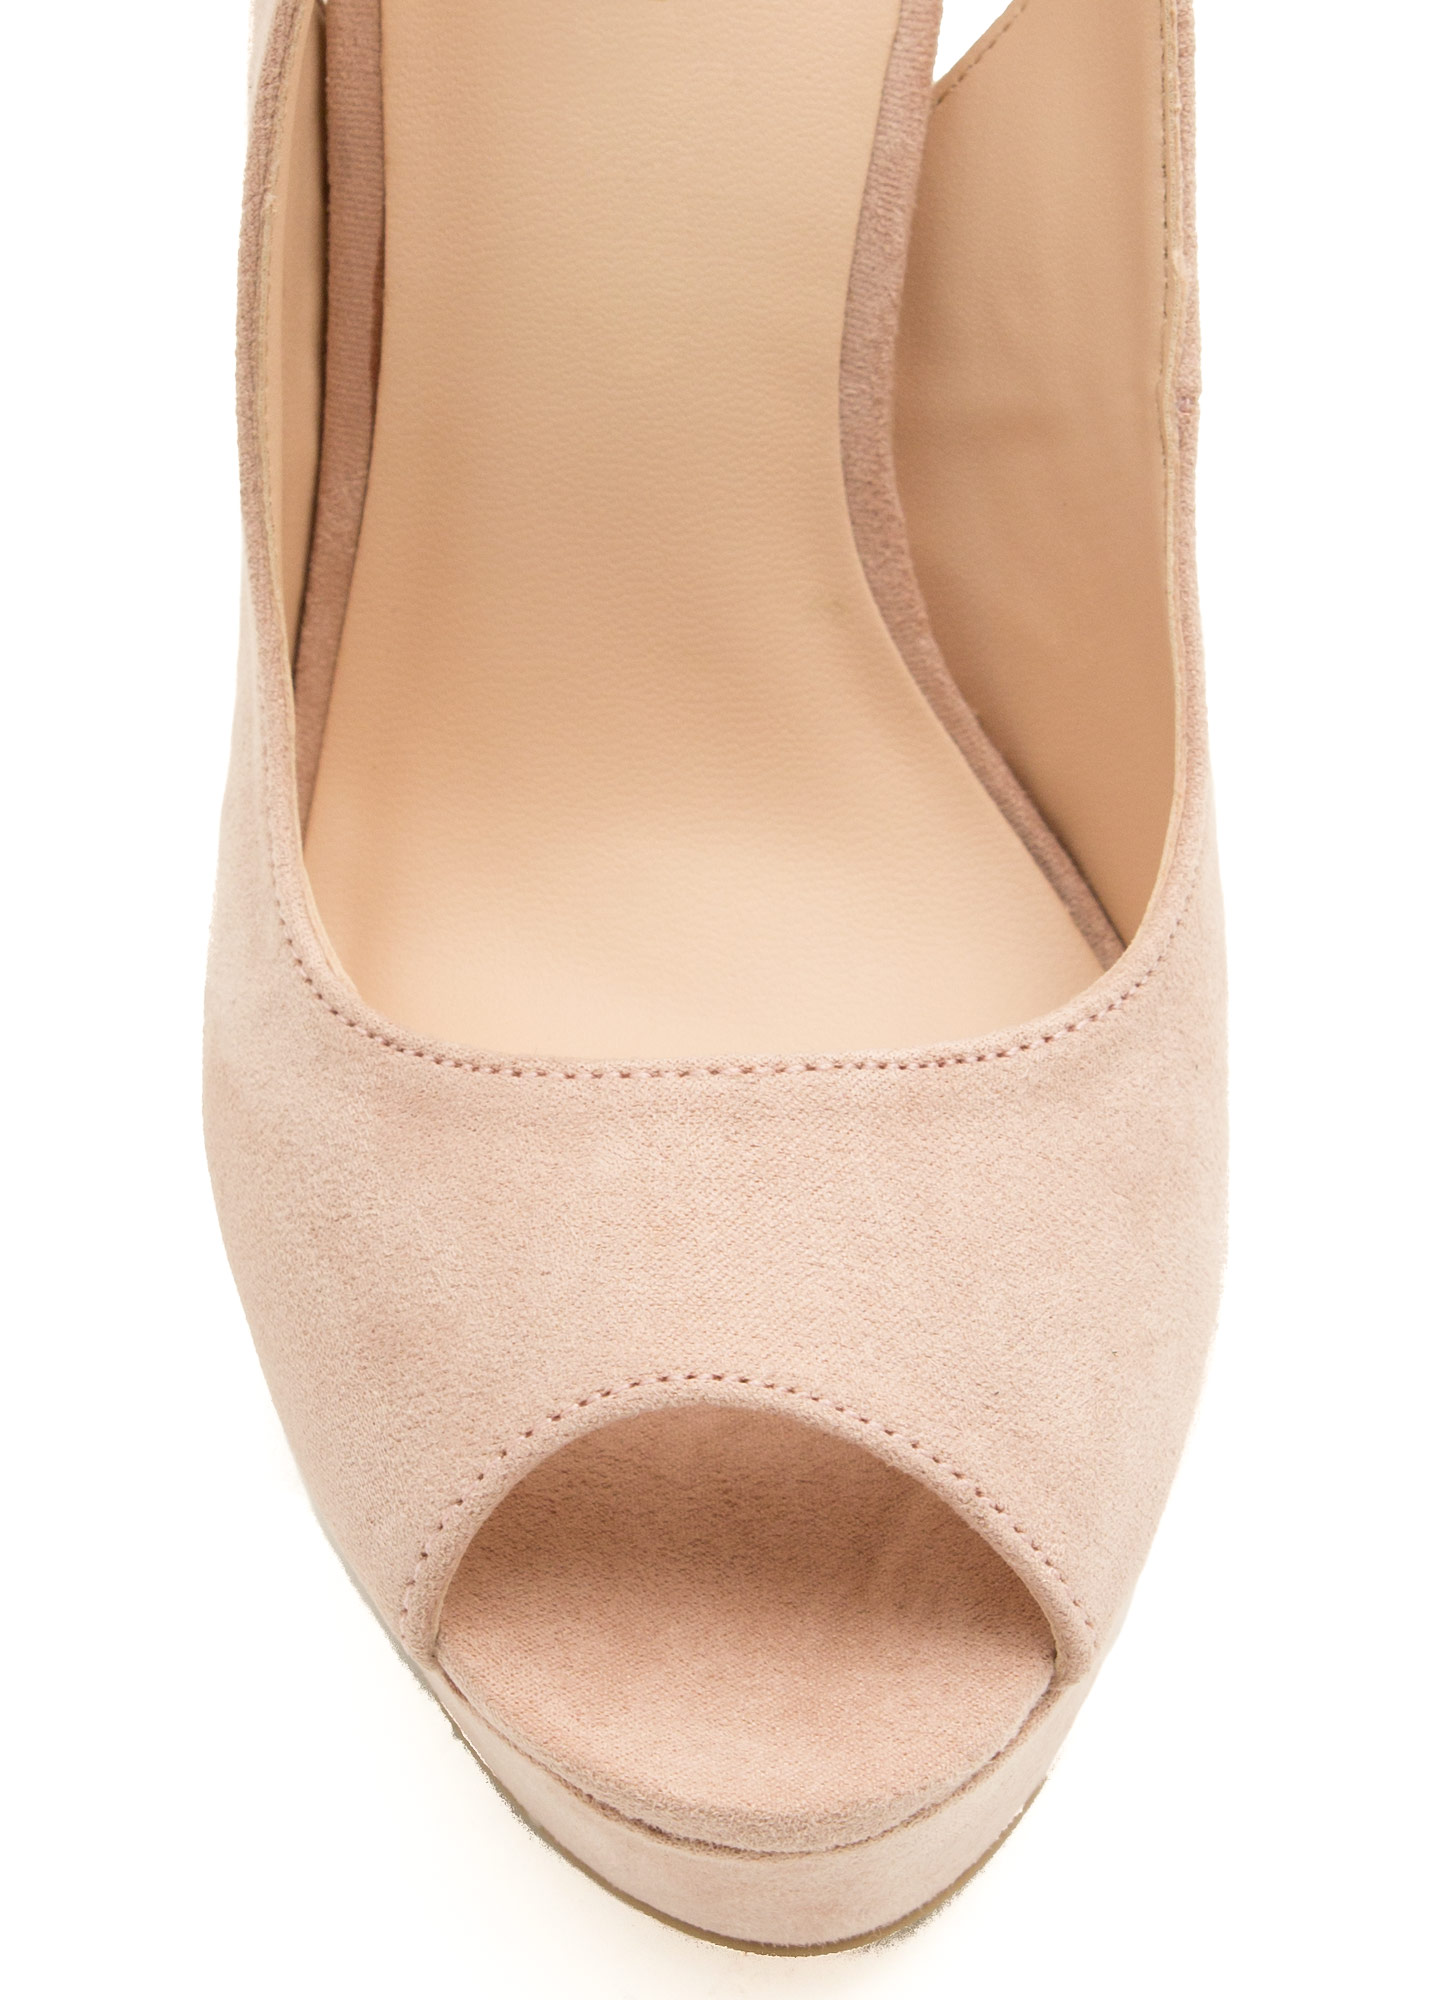 Peep-Toe Show Ankle Strap Platforms NUDE